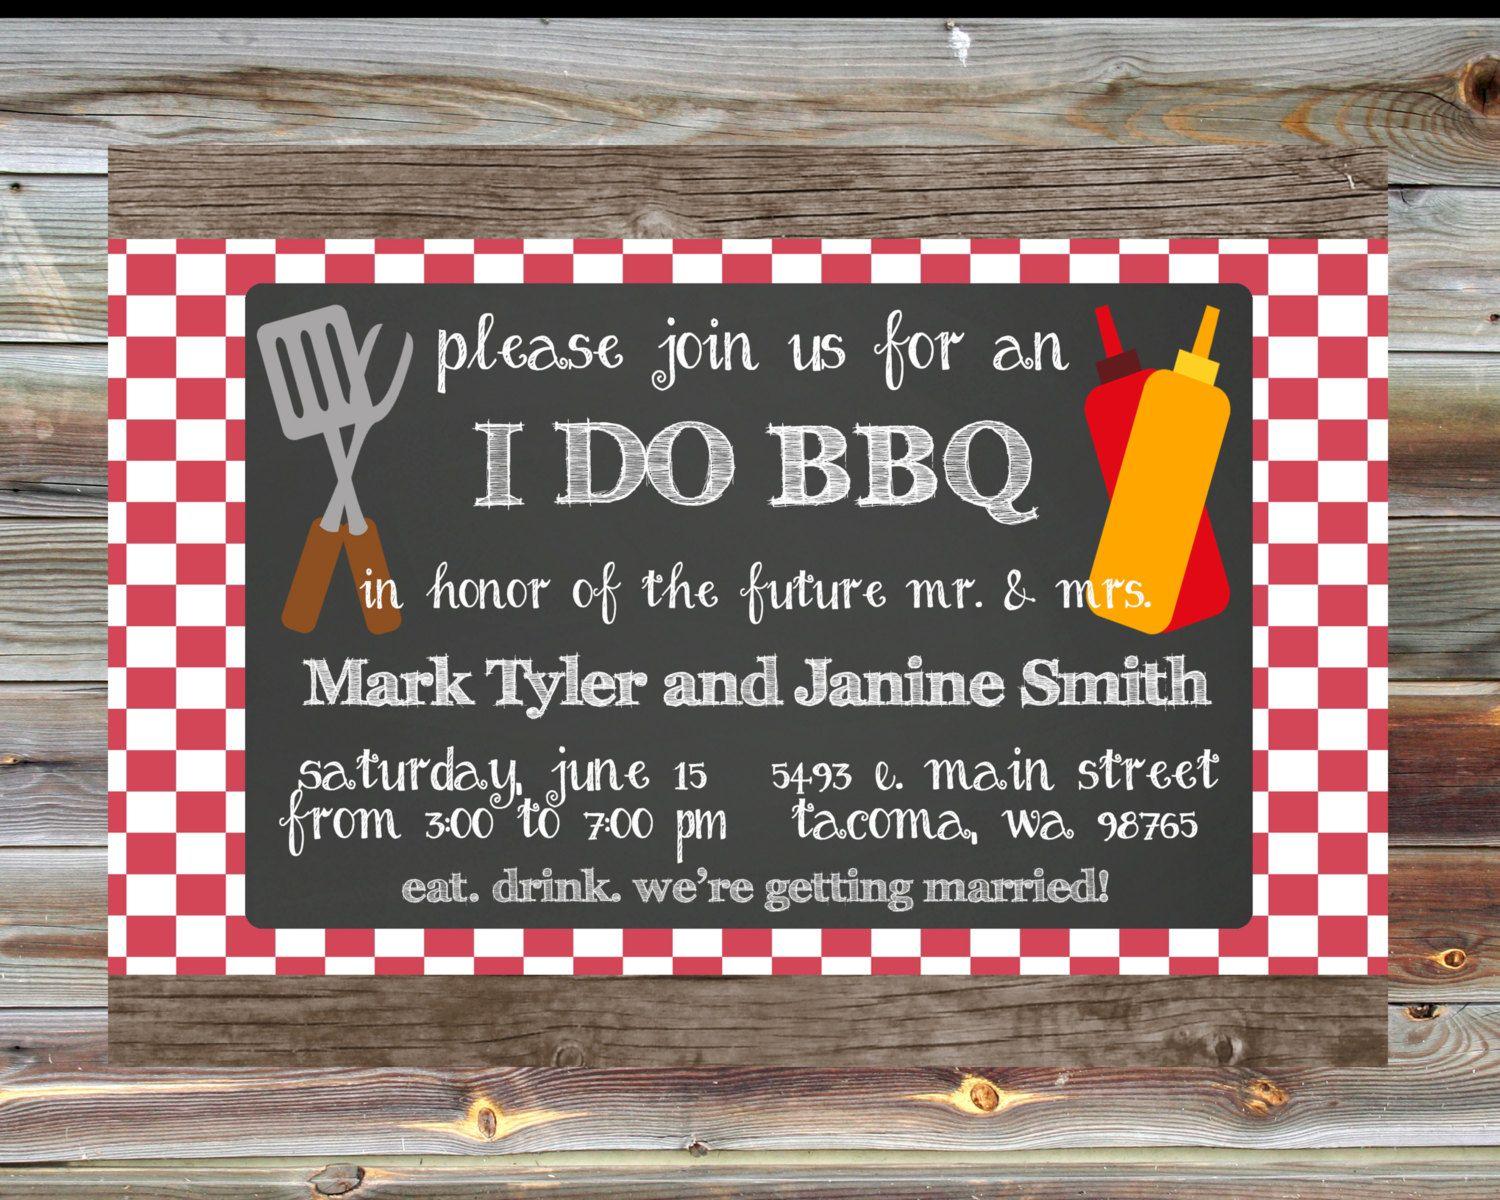 bridal shower invitation pictures%0A Personalized Custom I Do BBQ Couples Shower Invitation  I Do BBQ Red Plaid  Invite